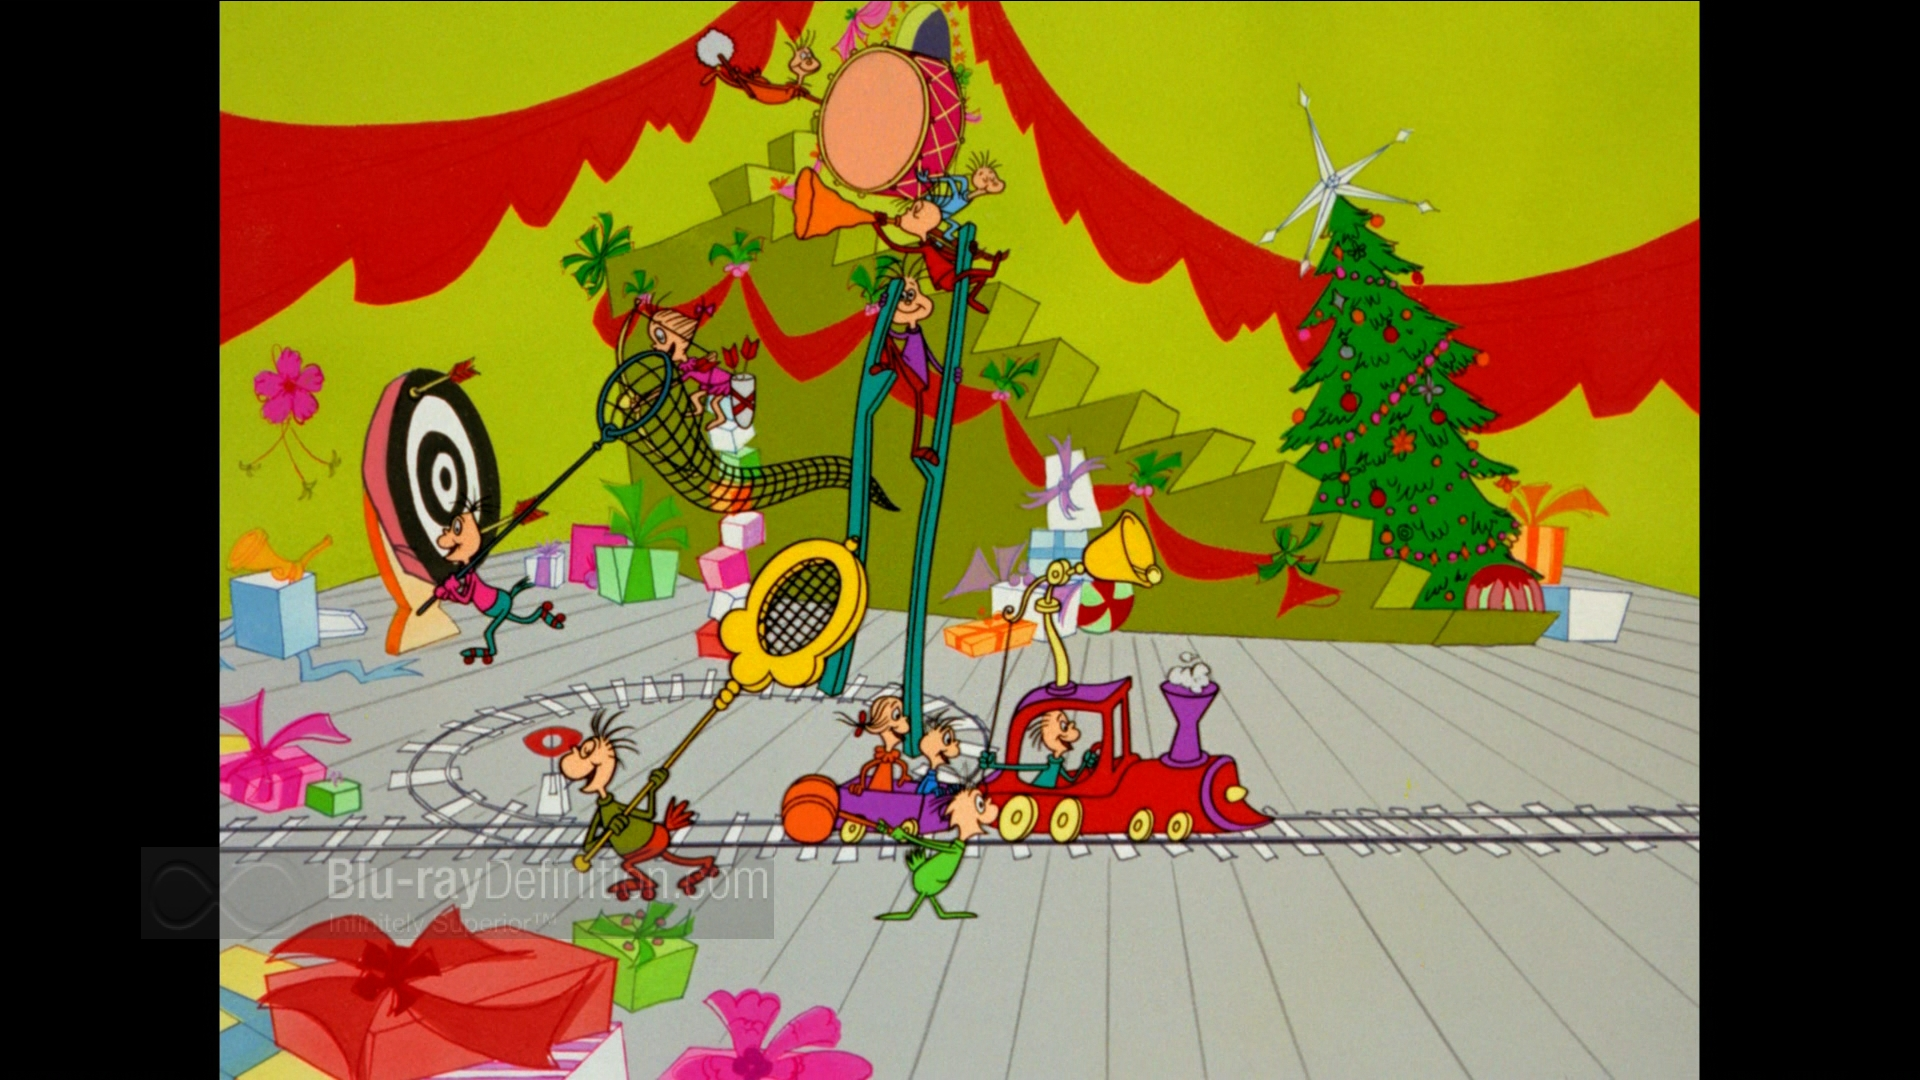 Dr-Seuss-How-the-Grinch-Stole-Christmas-Blu-ray-Review-wallpaper-wp3804858